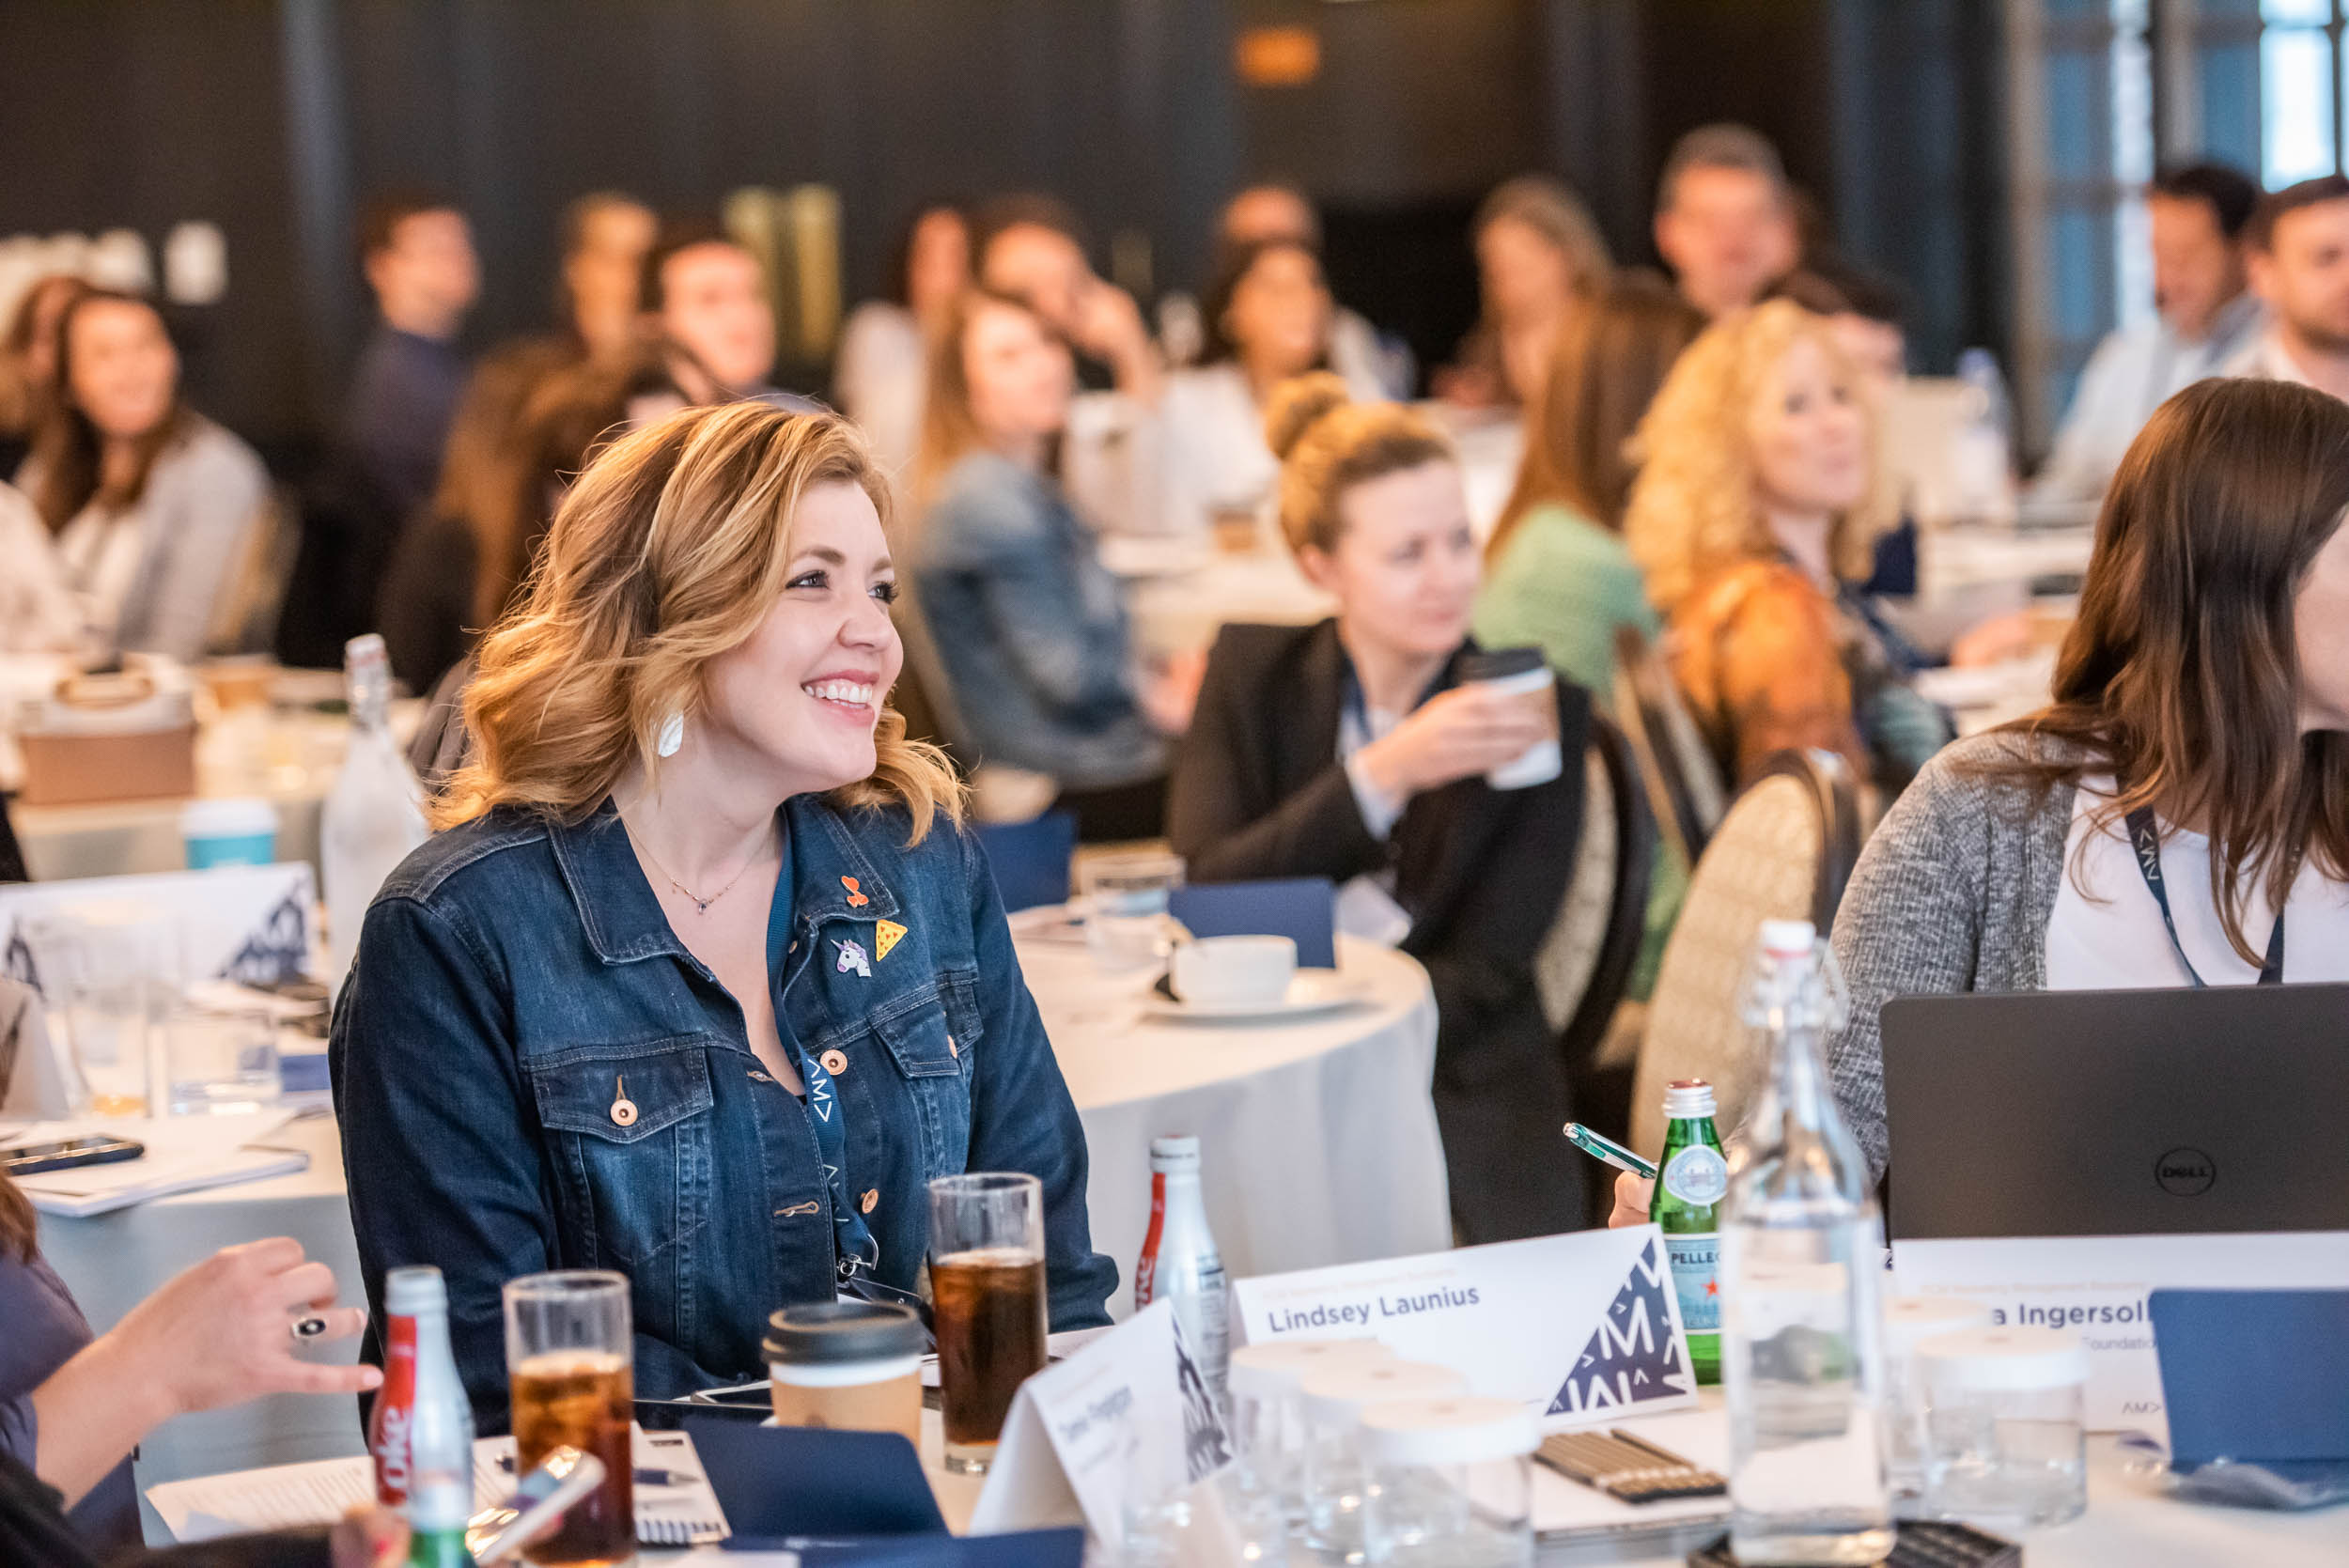 BOOT CAMP - We photographed AMA's 2019 one-day boot camp on messaging, branding and working within a budget.